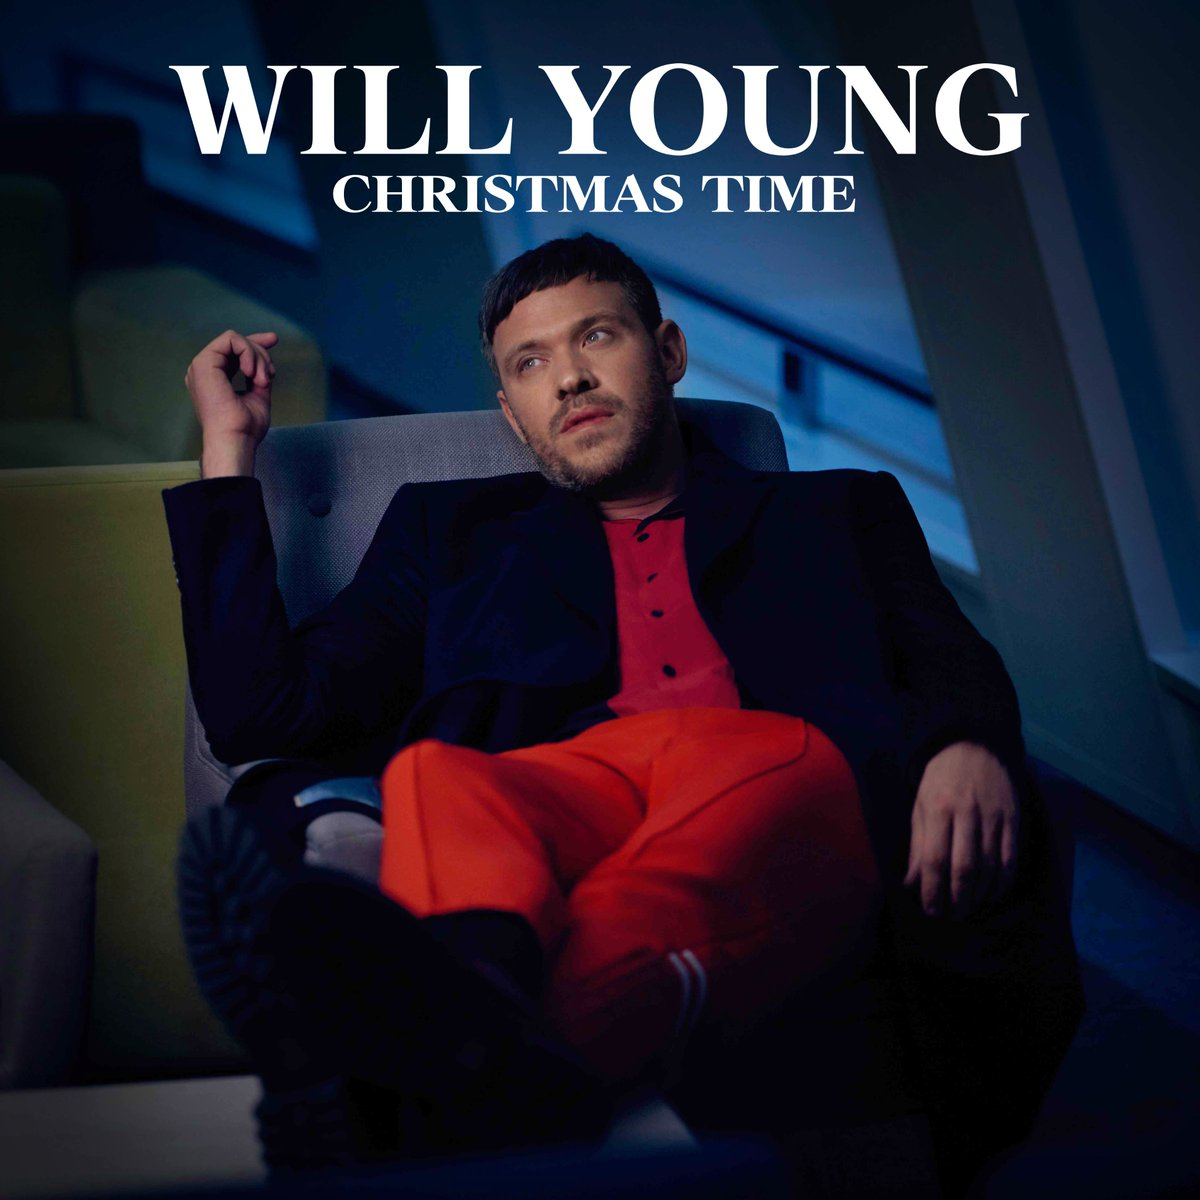 New Music, New CHRISTMAS MUSIC, stream, play, download here WillYoung.lnk.to/ChristmasTime